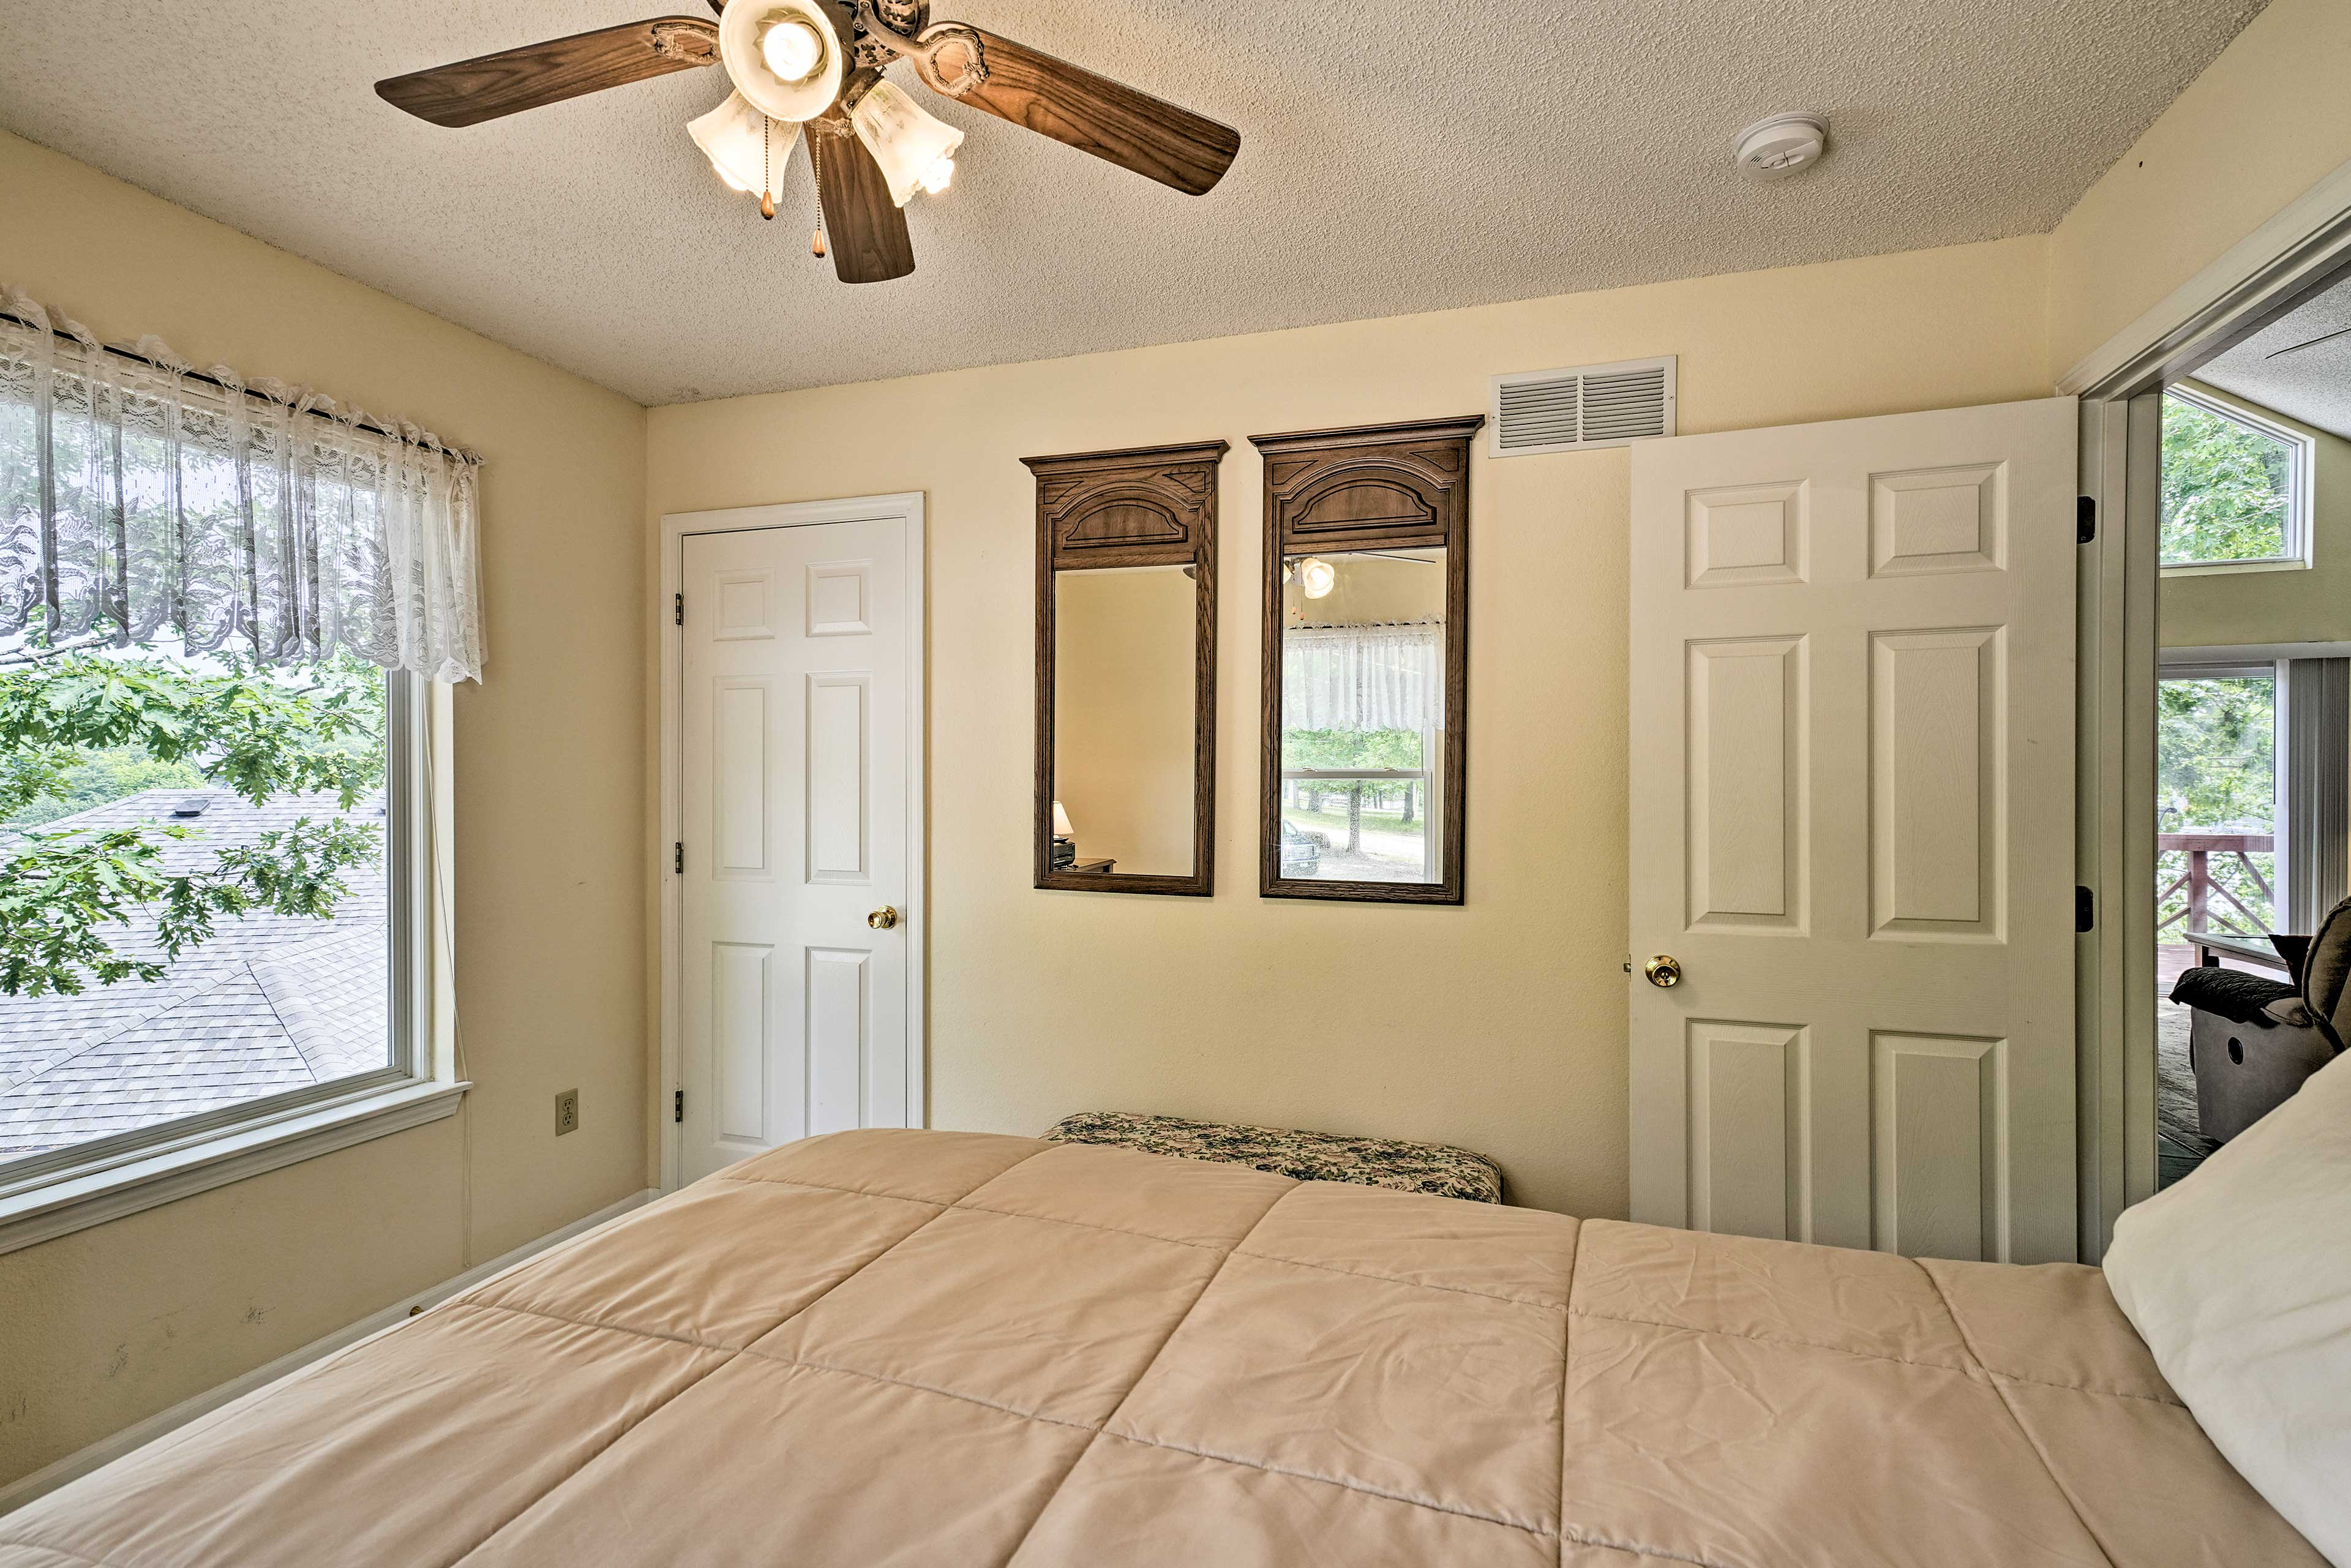 Closets help you stay organized during your vacation!